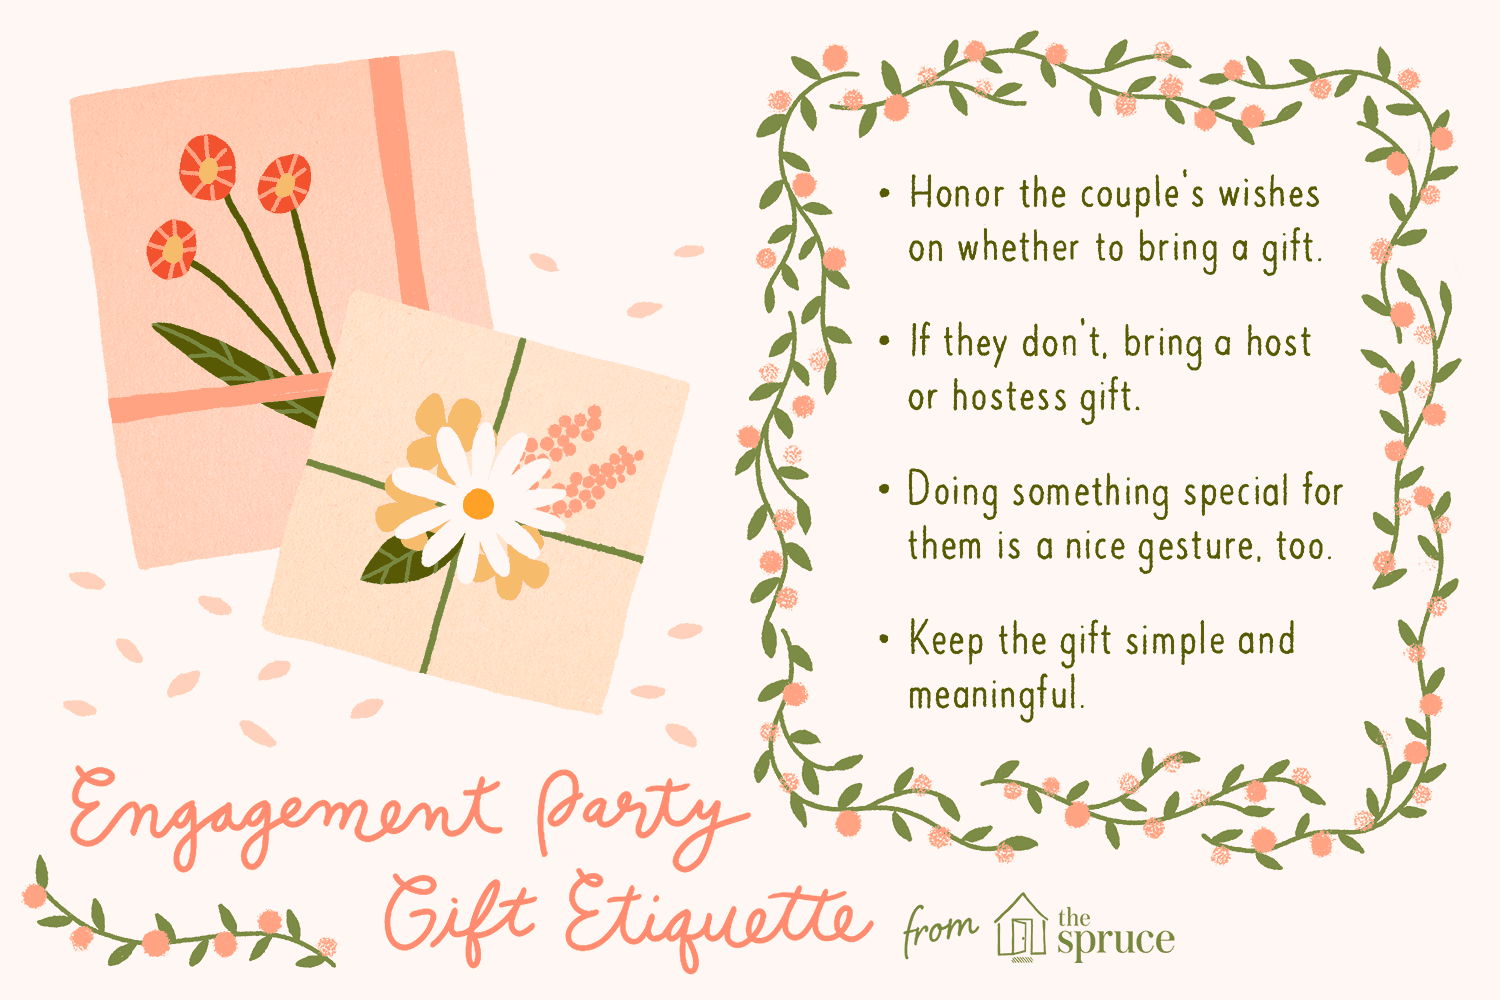 Wedding Gift Presents: Should You Bring A Gift To An Engagement Party?